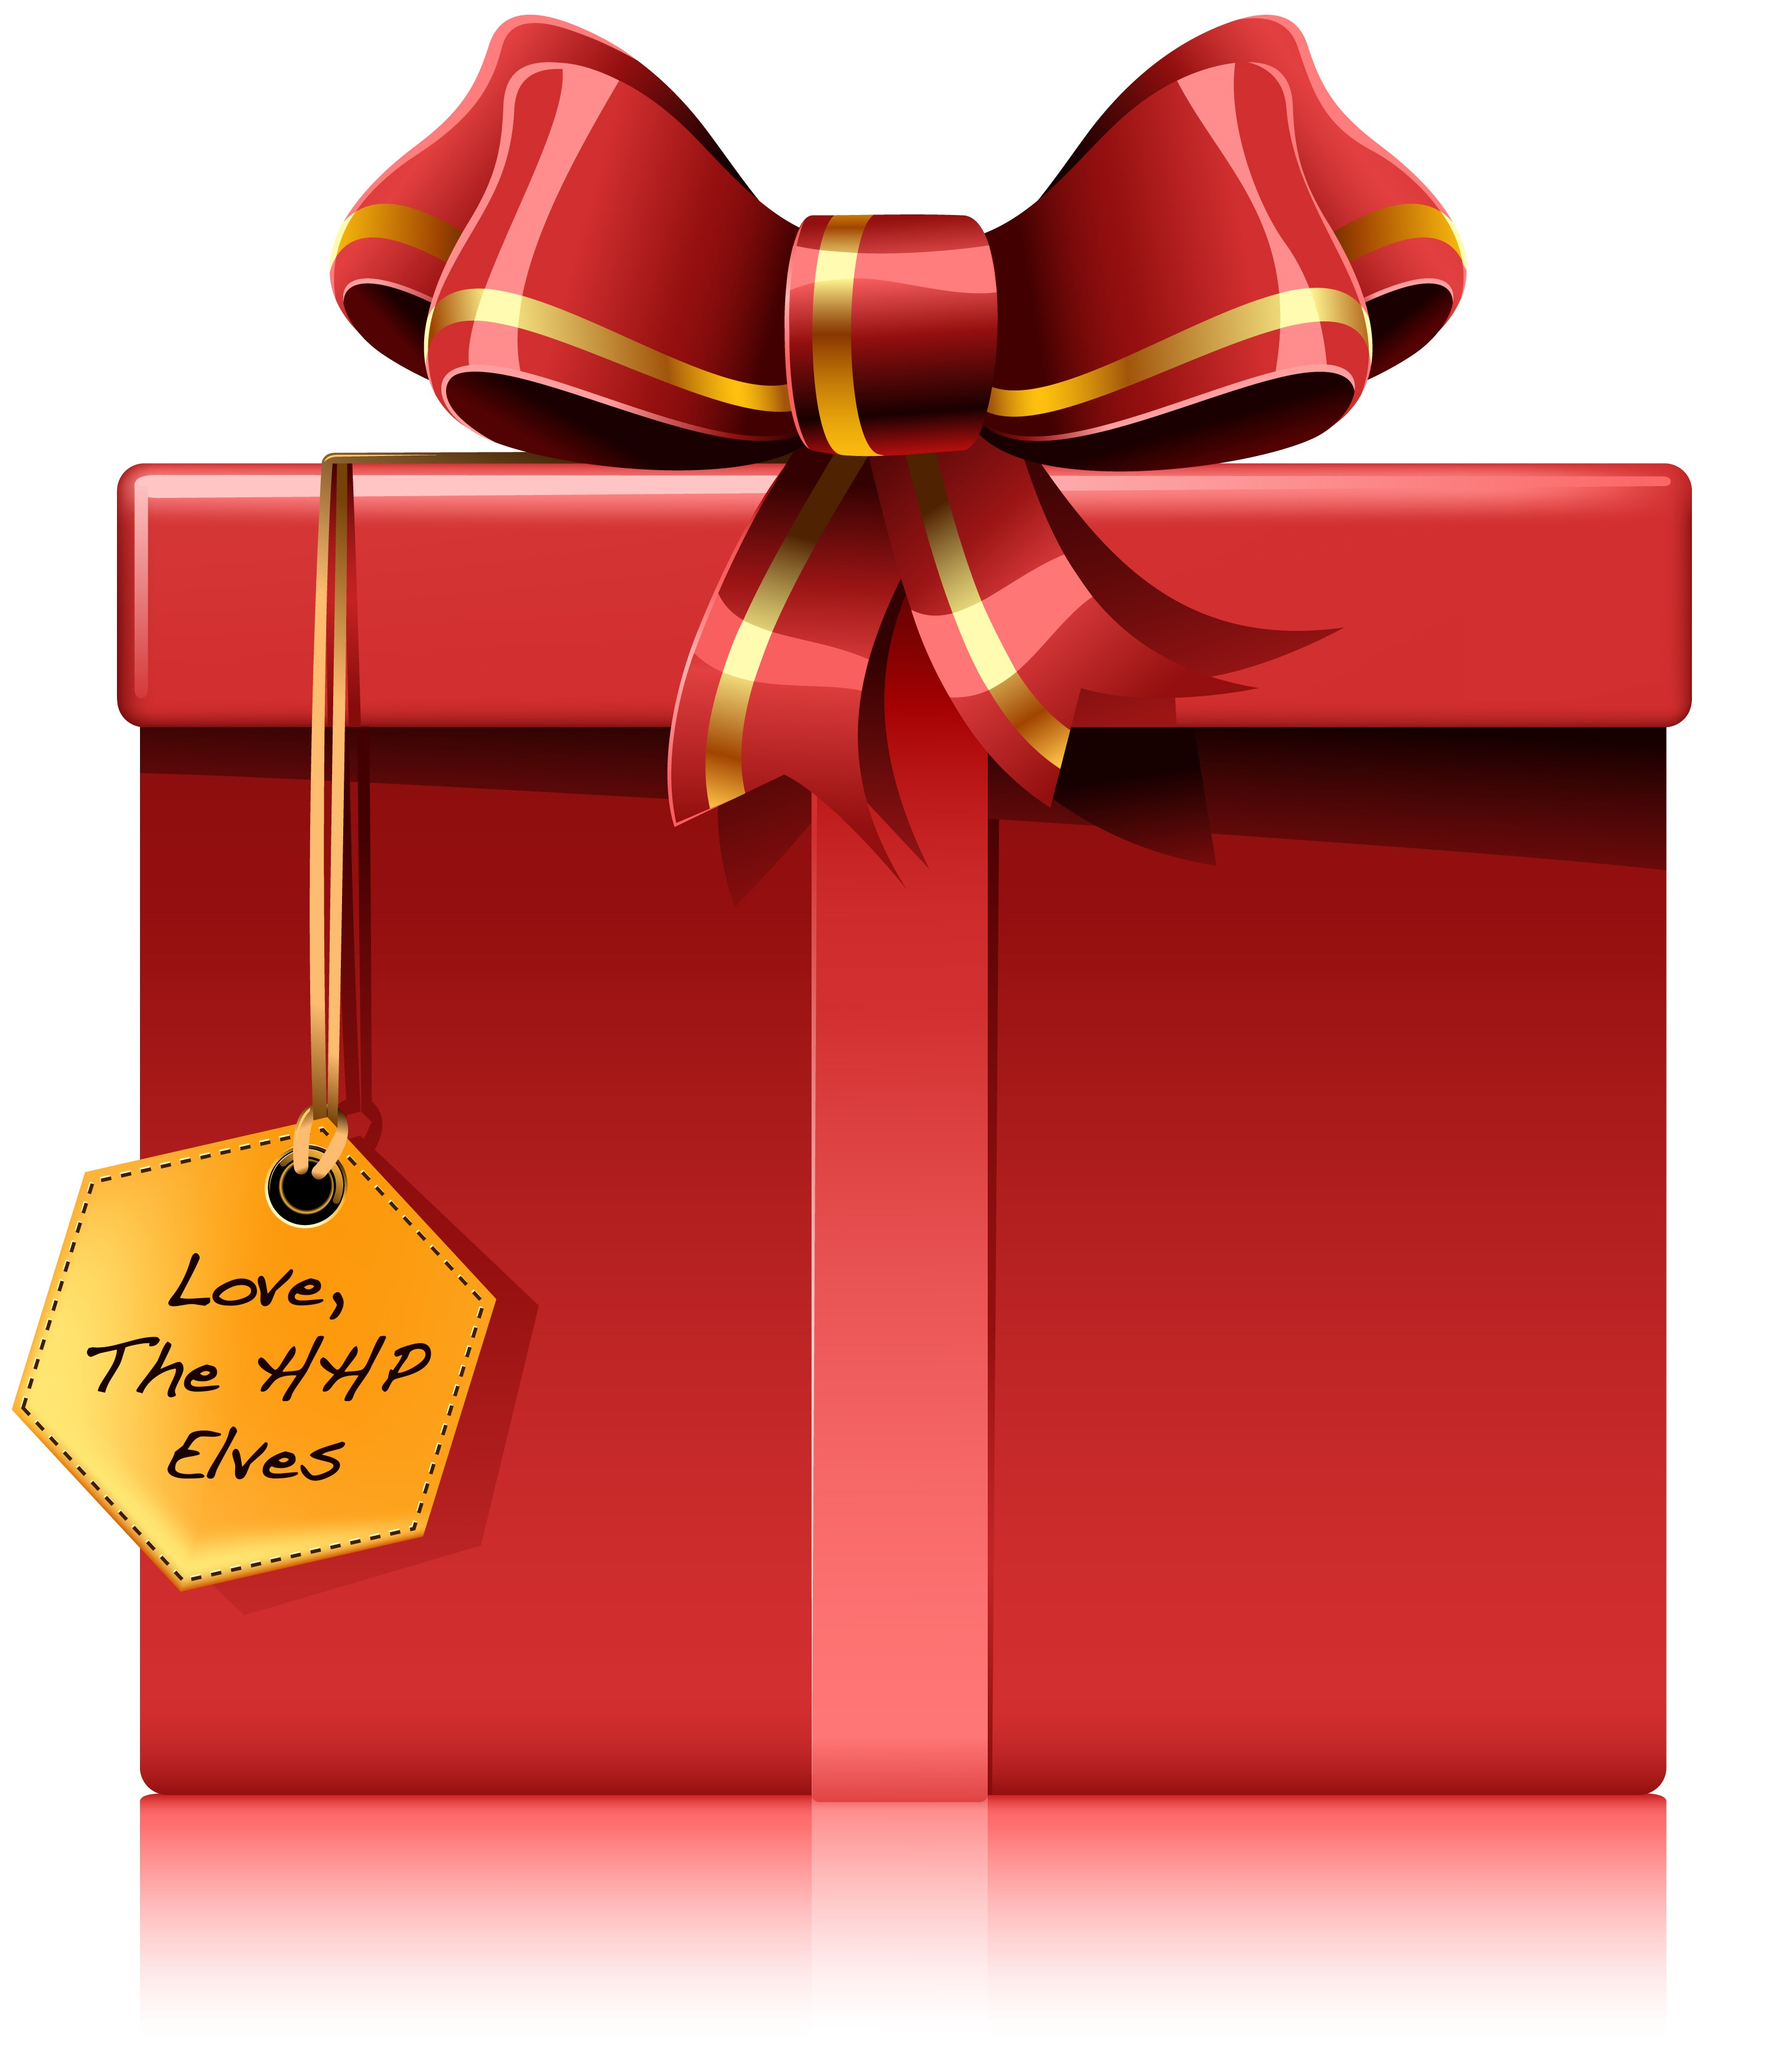 Baby Gift Of The Month Club : Secret santa week monday s gift to you heidi hope